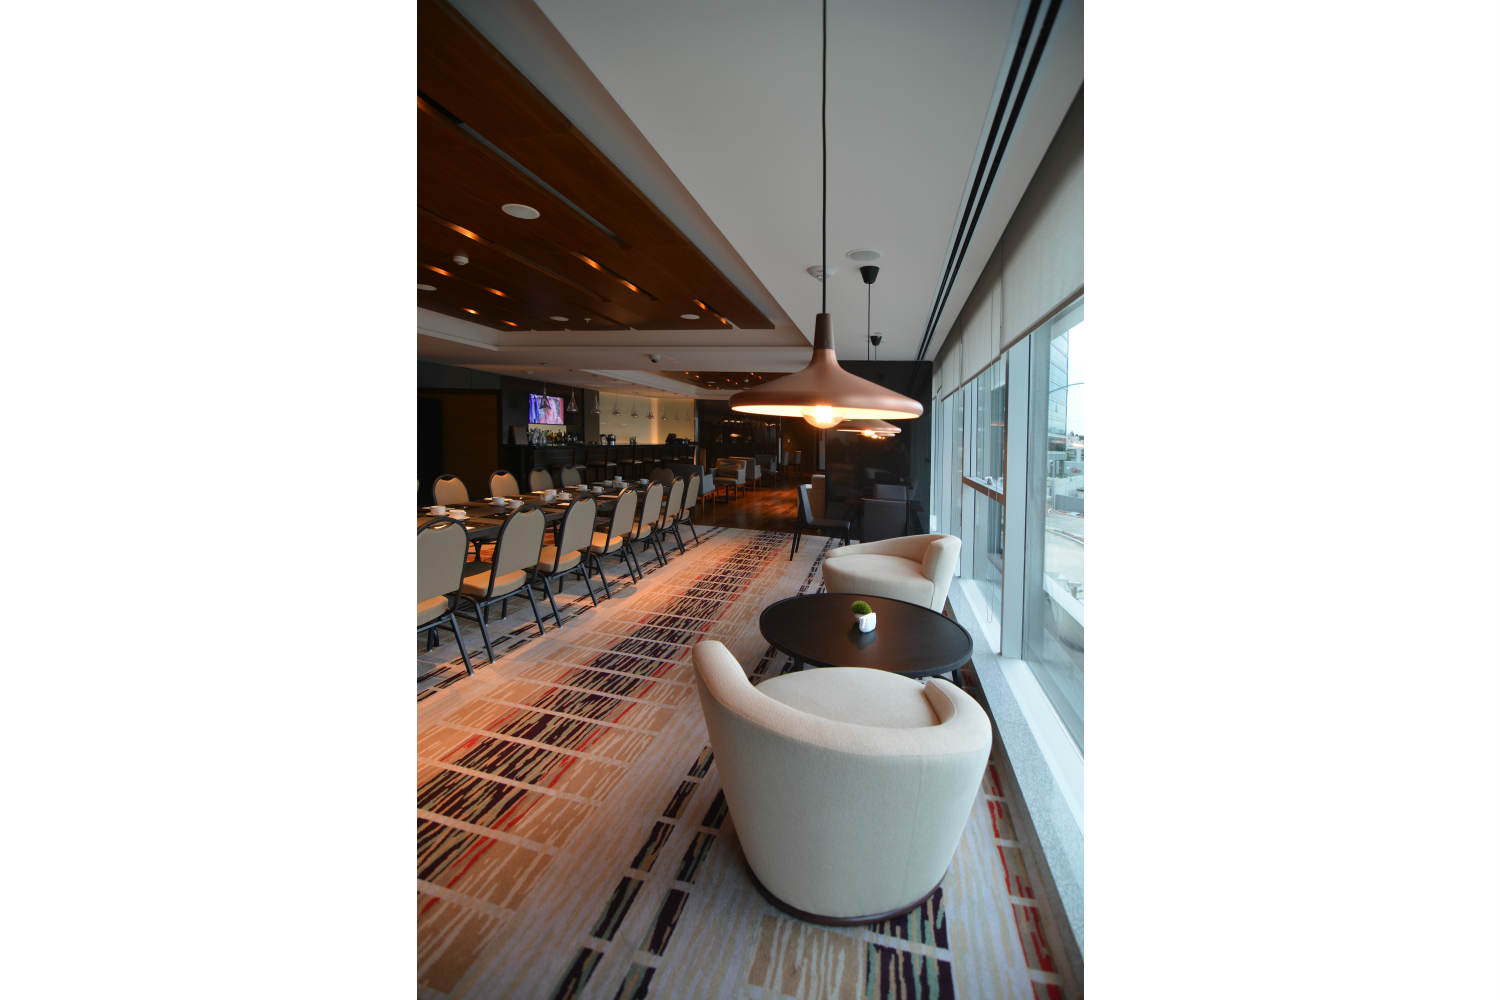 Hilton Garden Inn in Montevideo, Uruguay. Invisible acoustics designed and install by WSDG - WSDG Latin, Sergio Molho and Silvia Molho. Bar window seat